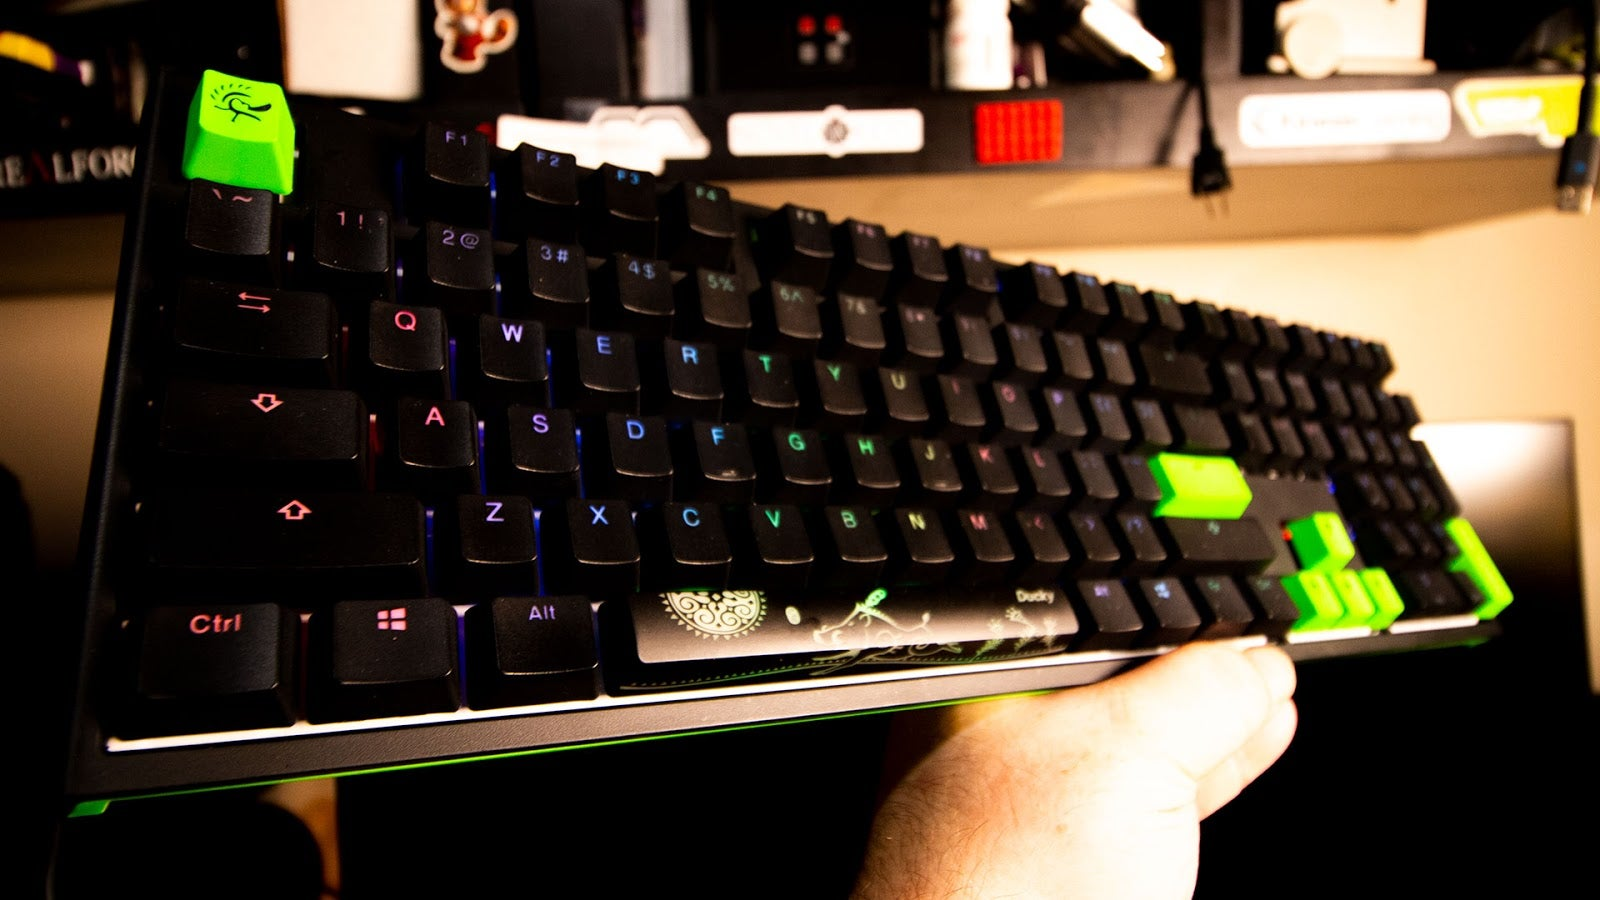 Razer And Ducky Made A Beautiful Keyboard Together